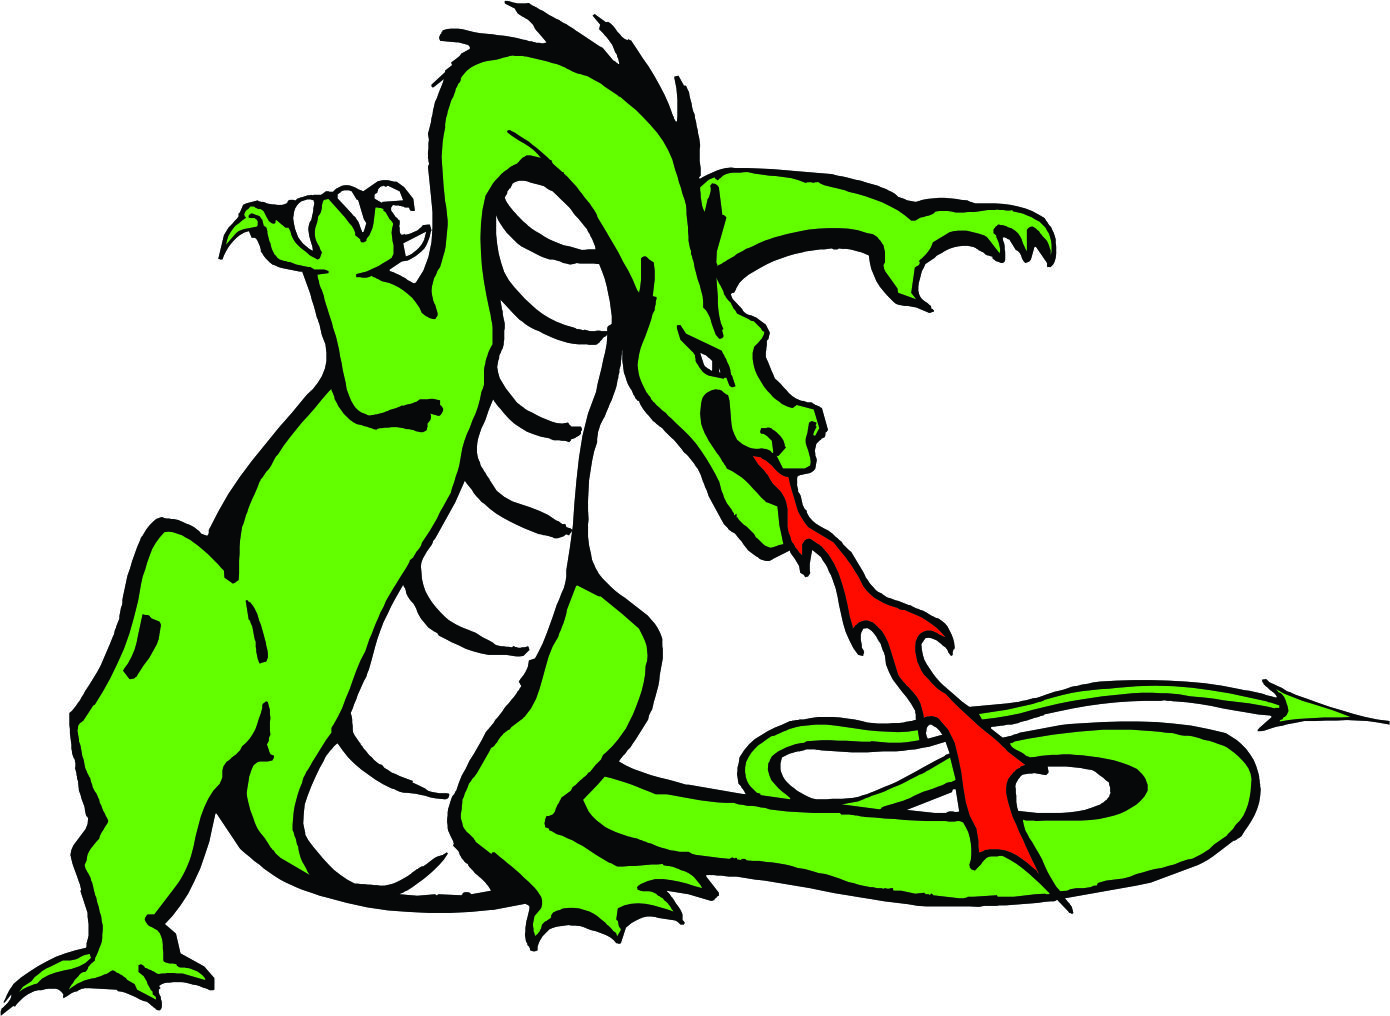 1390x1016 Dragon Clipart Fierce Dragon Free Collection Download And Share